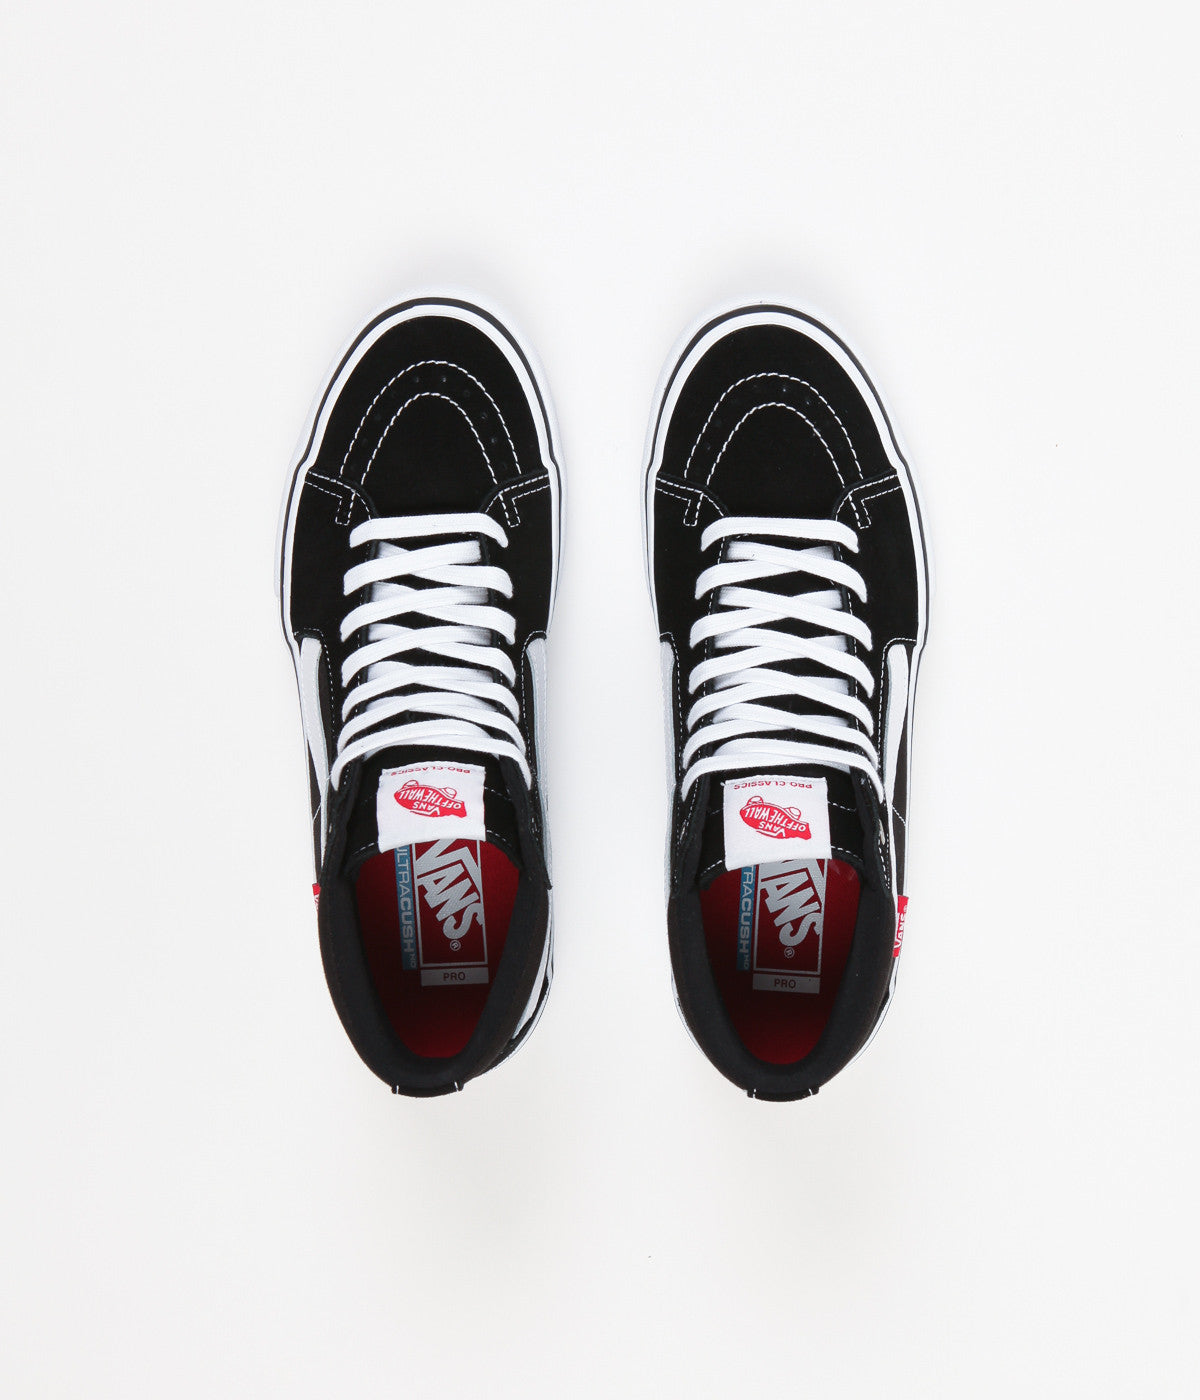 db4b46776c Previous. Vans Sk8-Hi Pro Shoes - Black   White ...